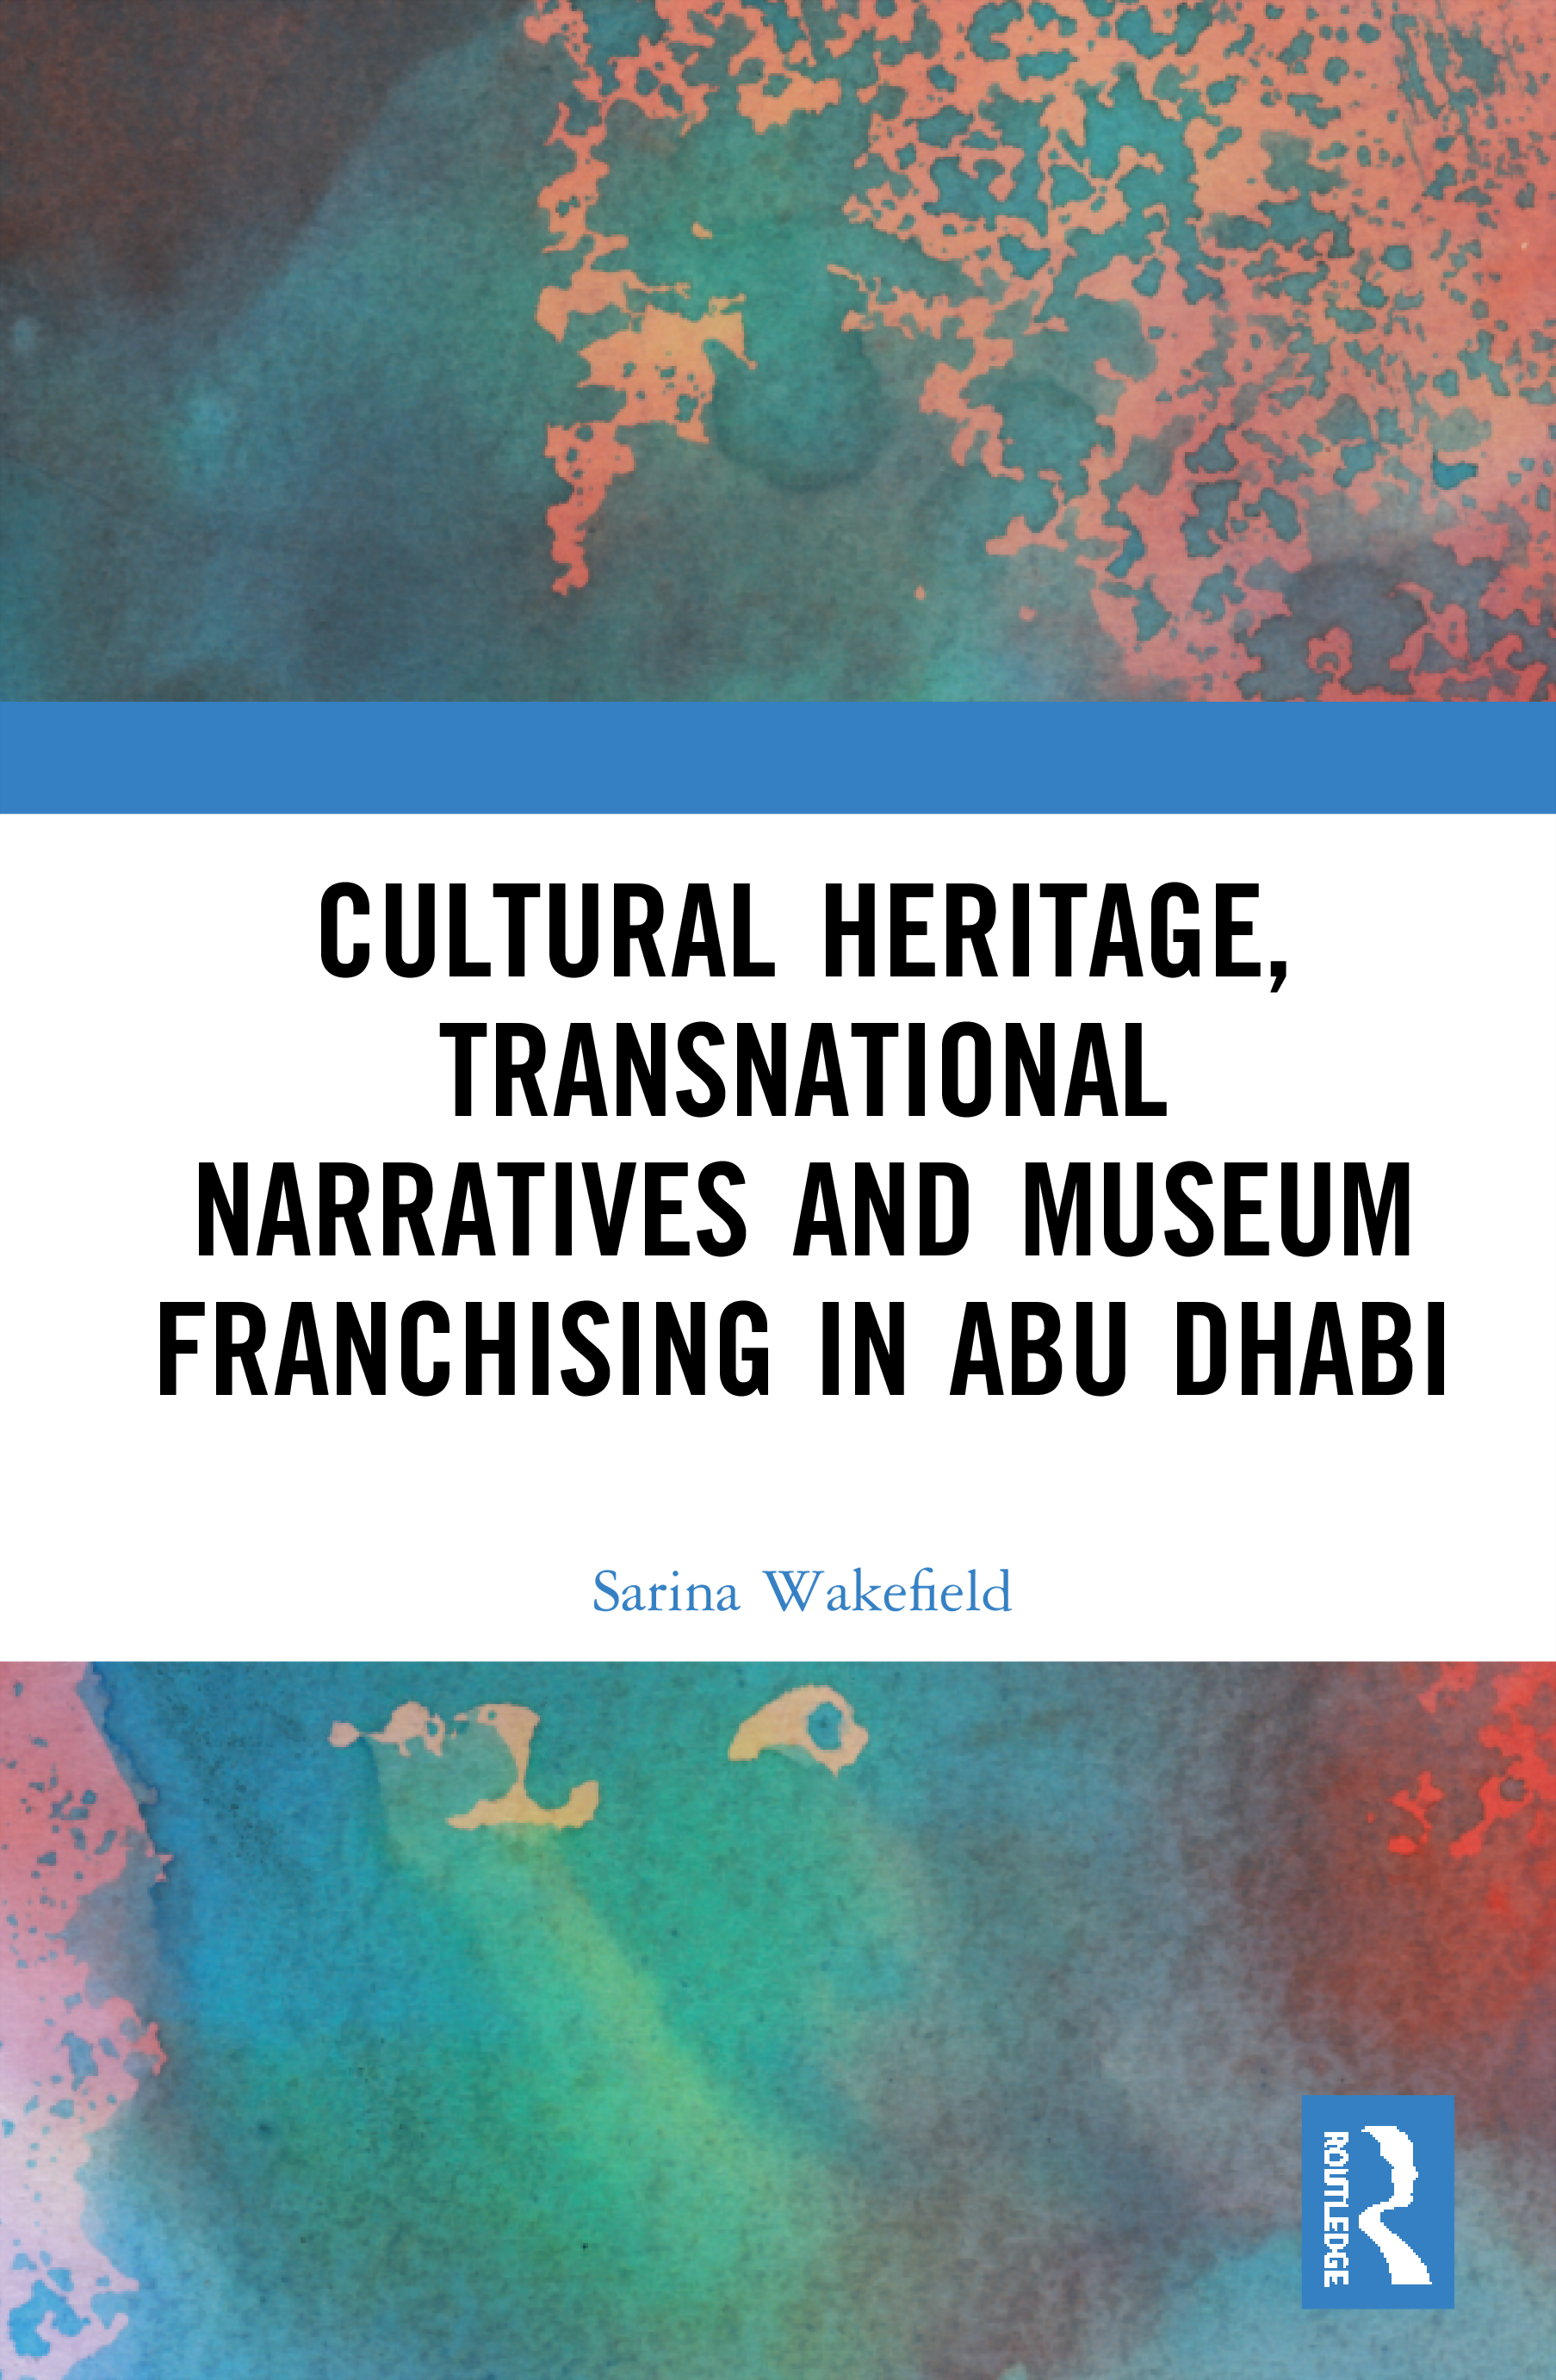 Cultural Heritage, Transnational Narratives and Museum Franchising in Abu Dhabi book cover